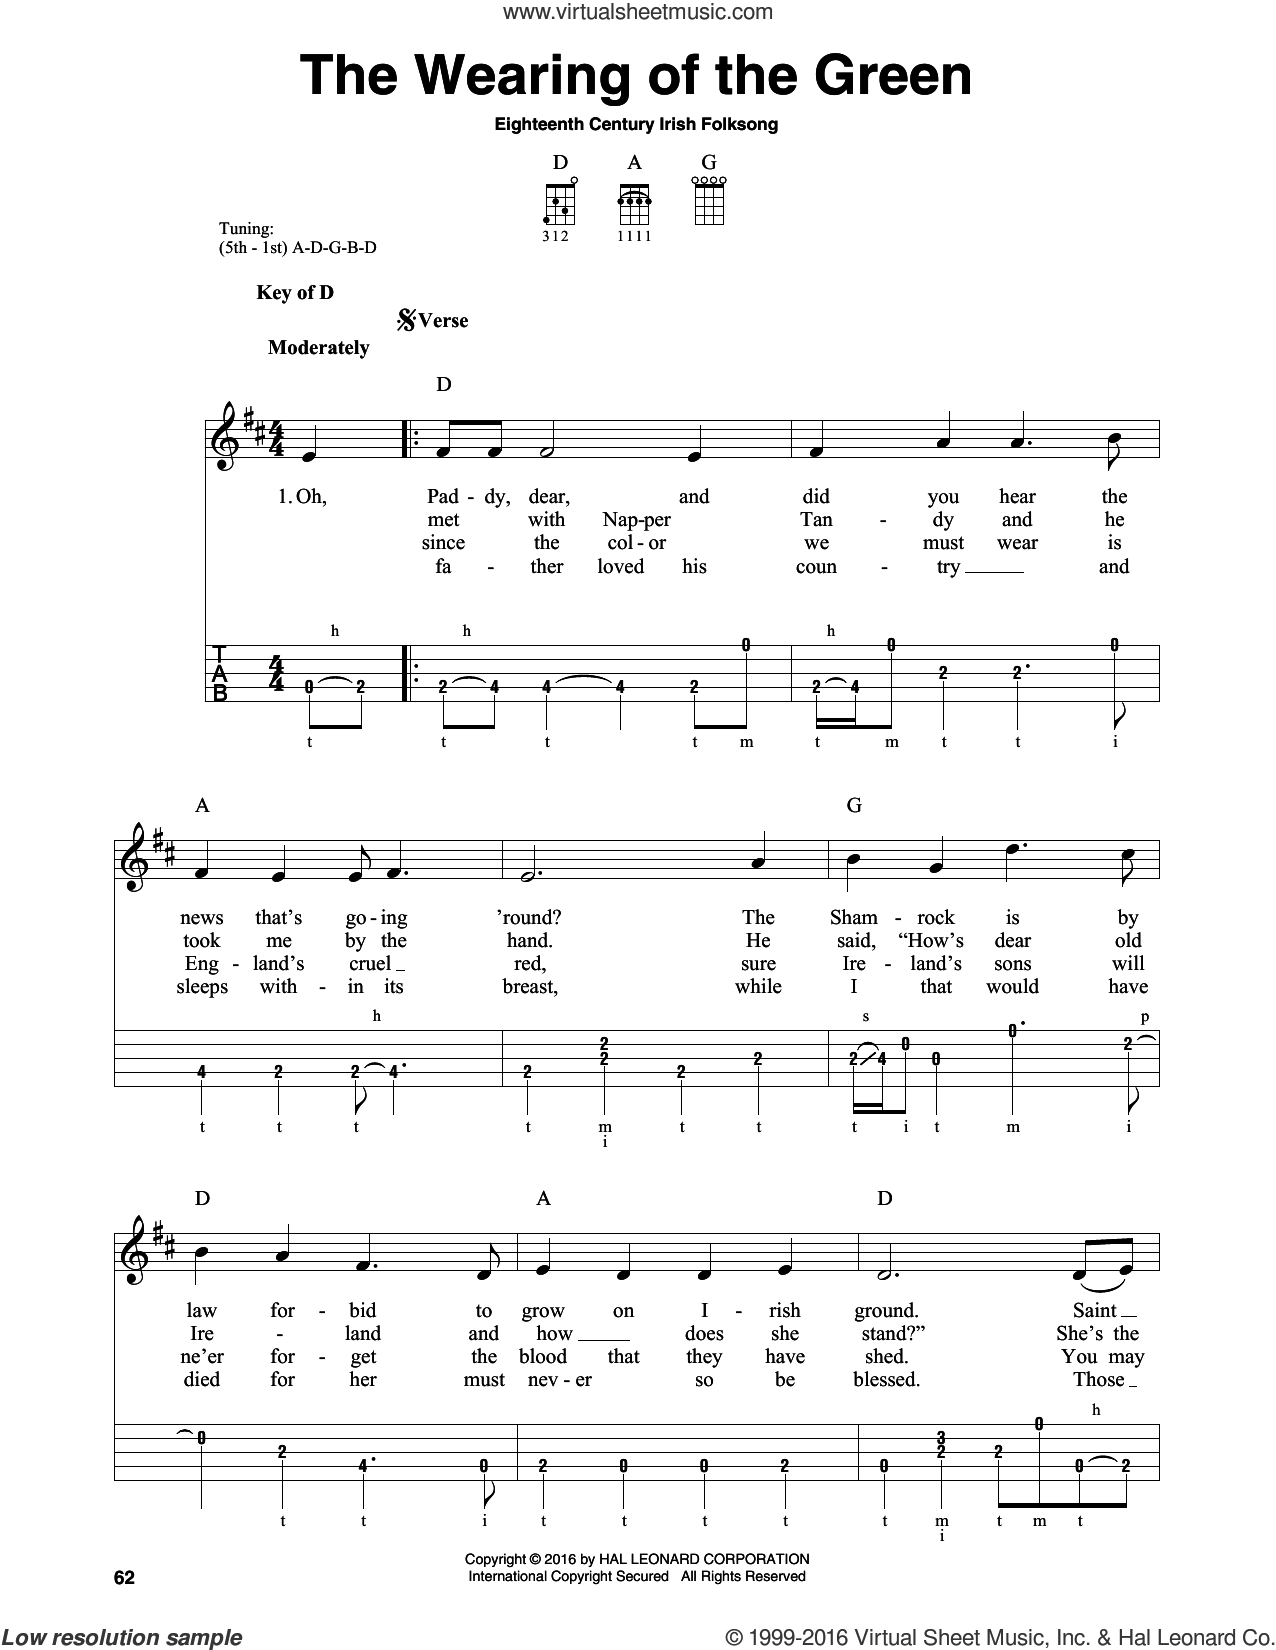 The Wearing Of The Green sheet music for banjo solo, intermediate skill level